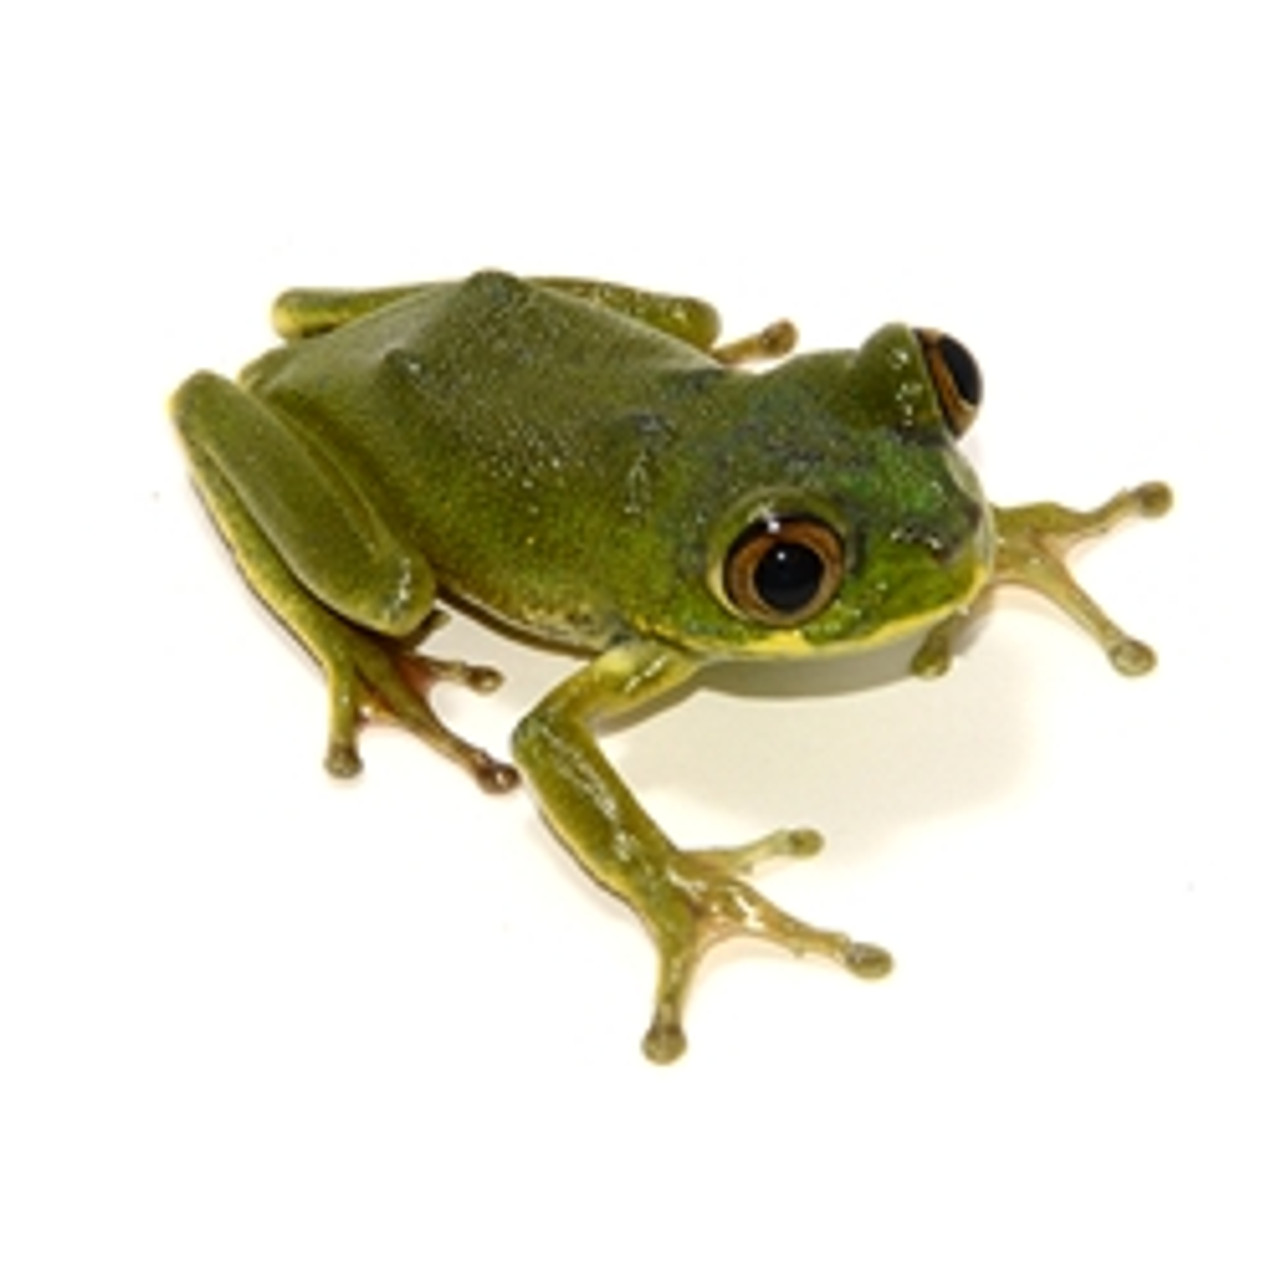 Big Eye Tree frog